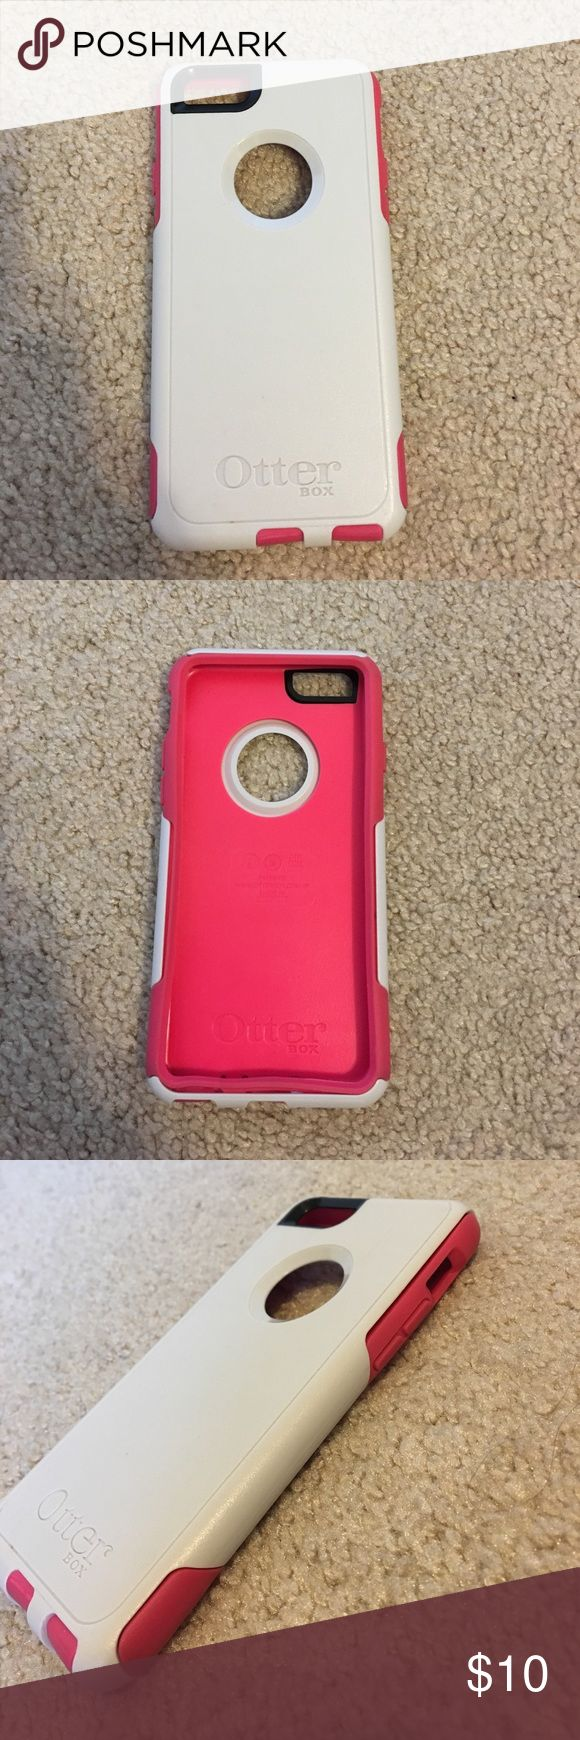 pink and white otter box iPhone 6s pink and white Otter Box, good condition Accessories Phone Cases